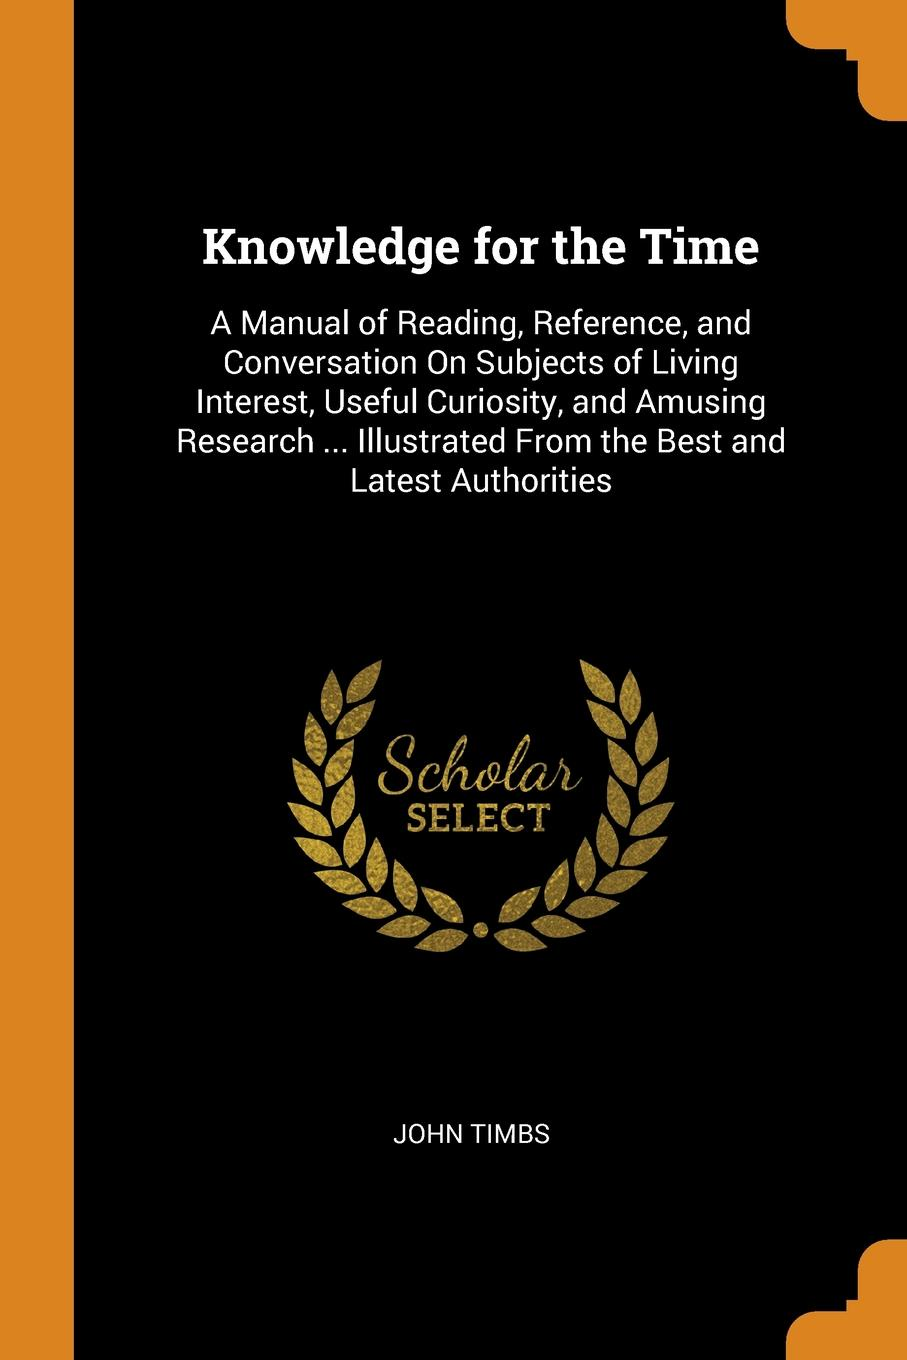 John Timbs Knowledge for the Time. A Manual of Reading, Reference, and Conversation On Subjects of Living Interest, Useful Curiosity, and Amusing Research ... Illustrated From the Best and Latest Authorities